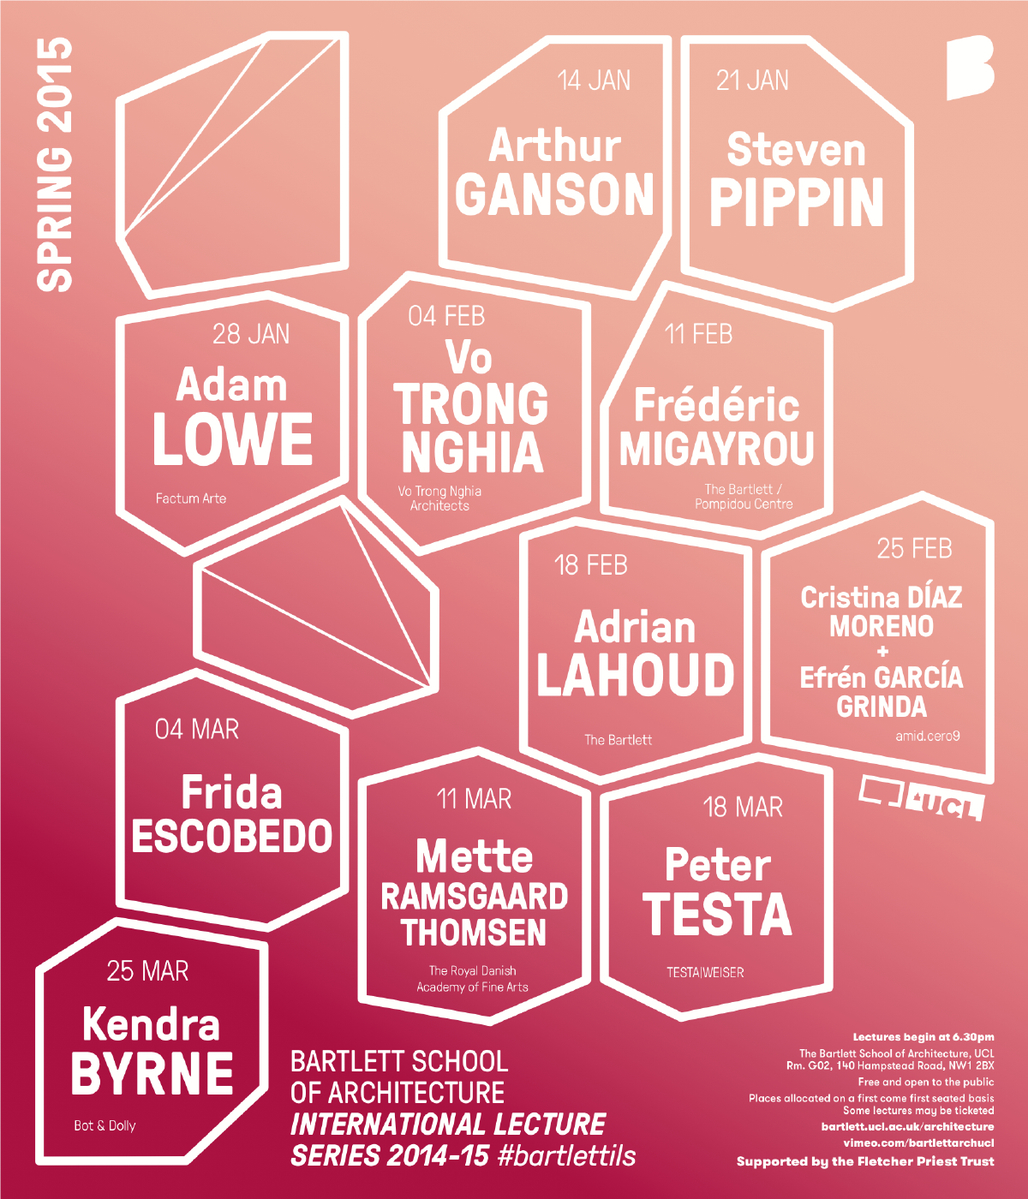 Bartlett International Lecture Series | Spring 2015. Designed by Luke Pearson. Image courtesy of The Bartlett School of Architecture.